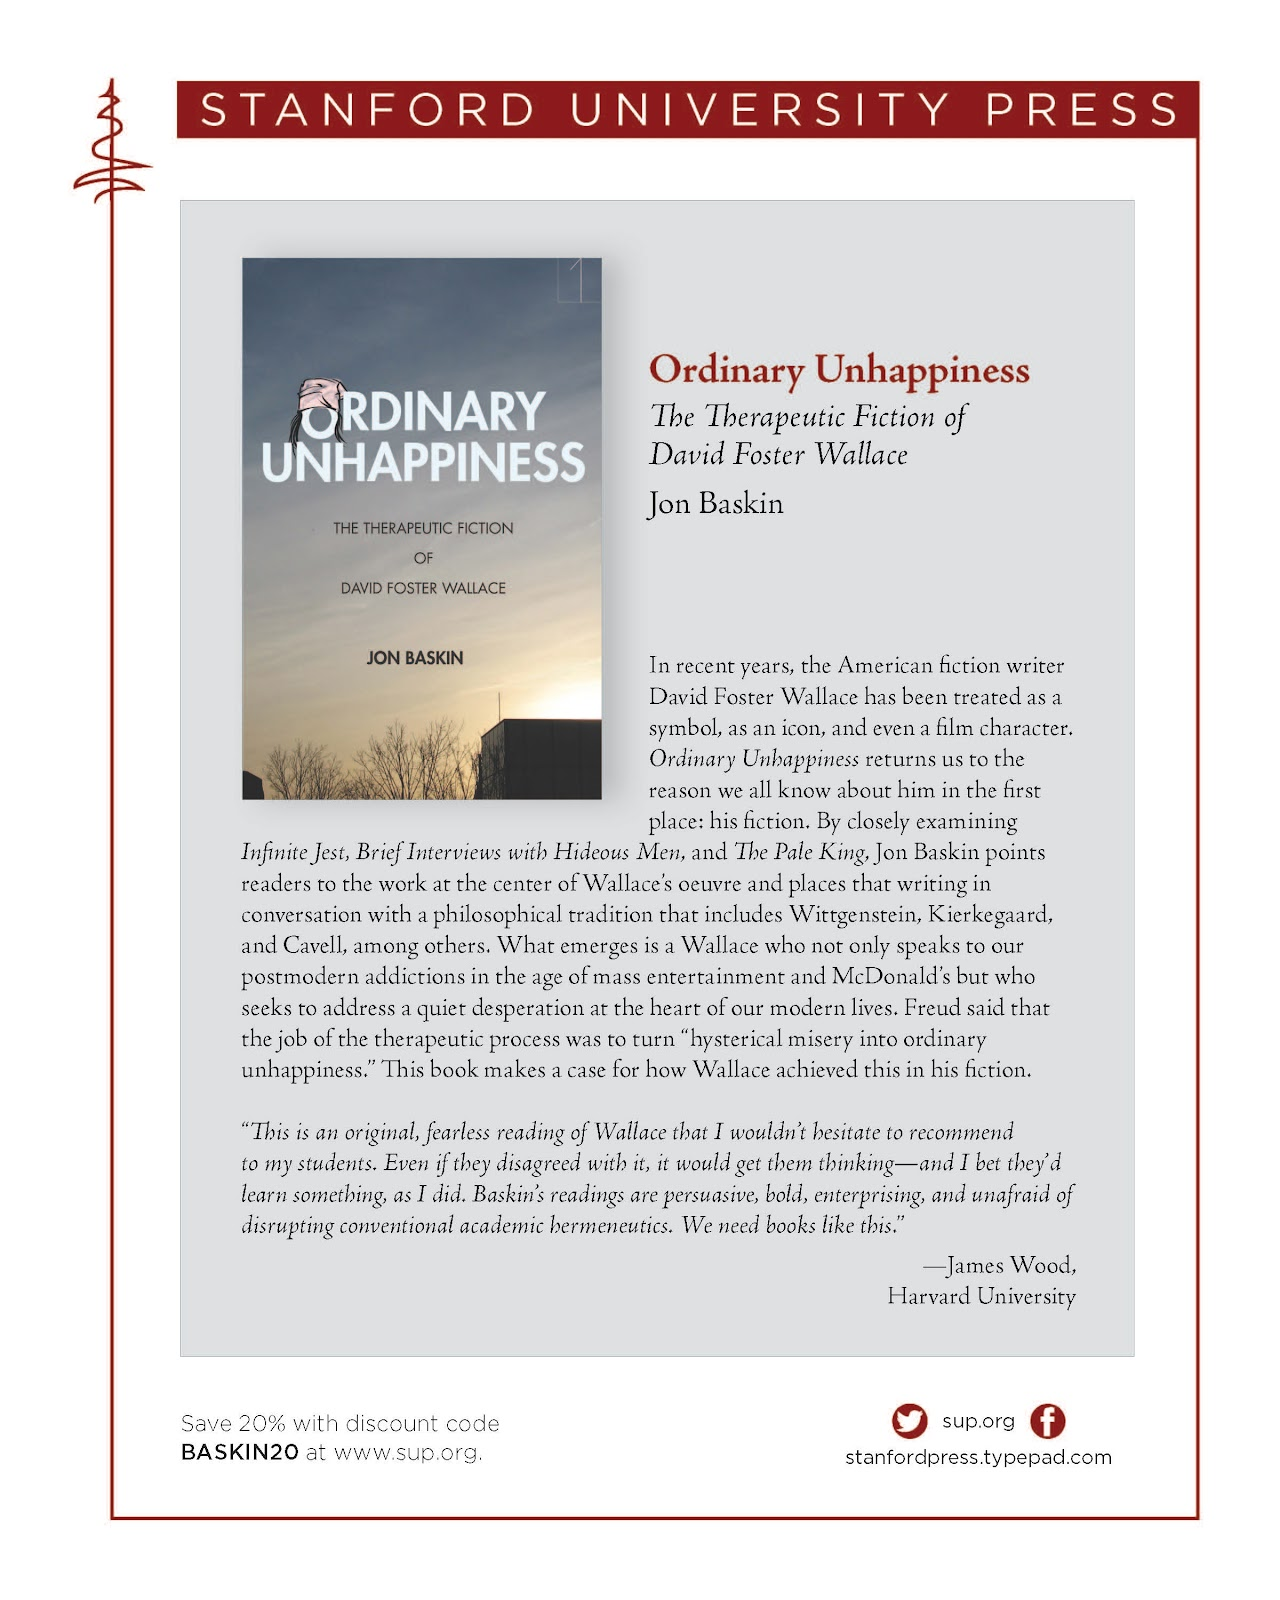 "Link to Page on Stanford University Press: https://www.sup.org/books/title/?id=29316  In recent years, the American fiction writer David Foster Wallace has been treated as a symbol, as an icon, and even a film character. Ordinary Unhappiness returns us to the reason we all know about him in the first place: his fiction. By closely examining Infinite Jest, Brief Interviews with Hideous Men, and The Pale King, Jon Baskin points readers to the work at the center of Wallace's oeuvre and places that writing in conversation with a philosophical tradition that includes Wittgenstein, Kierkegaard, and Cavell, among others. What emerges is a Wallace who not only speaks to our postmodern addictions in the age of mass entertainment and McDonald's but who seeks to address a quiet desperation at the heart of our modern lives. Freud said that the job of the therapeutic process was to turn ""hysterical misery into ordinary unhappiness."" This book makes a case for how Wallace achieved this in his fiction.  About the author  Jon Baskin is the Associate Director of the Creative Publishing and Critical Journalism program at the New School for Social Research and a founding editor of The Point."